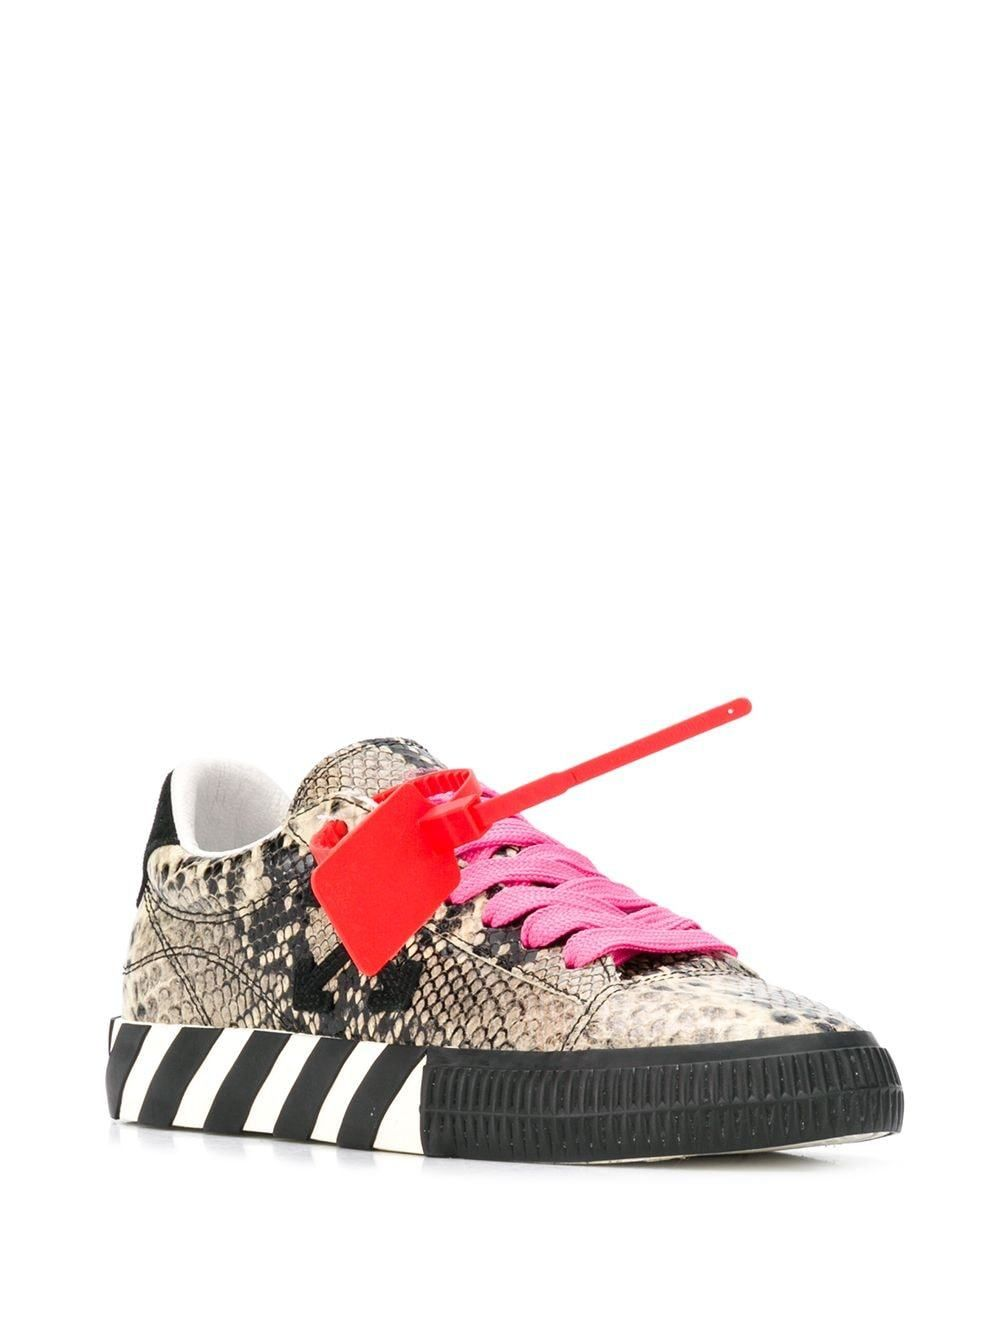 OFF-WHITE Women New Arrow Low Vulcanized Sneakers Medium Grey